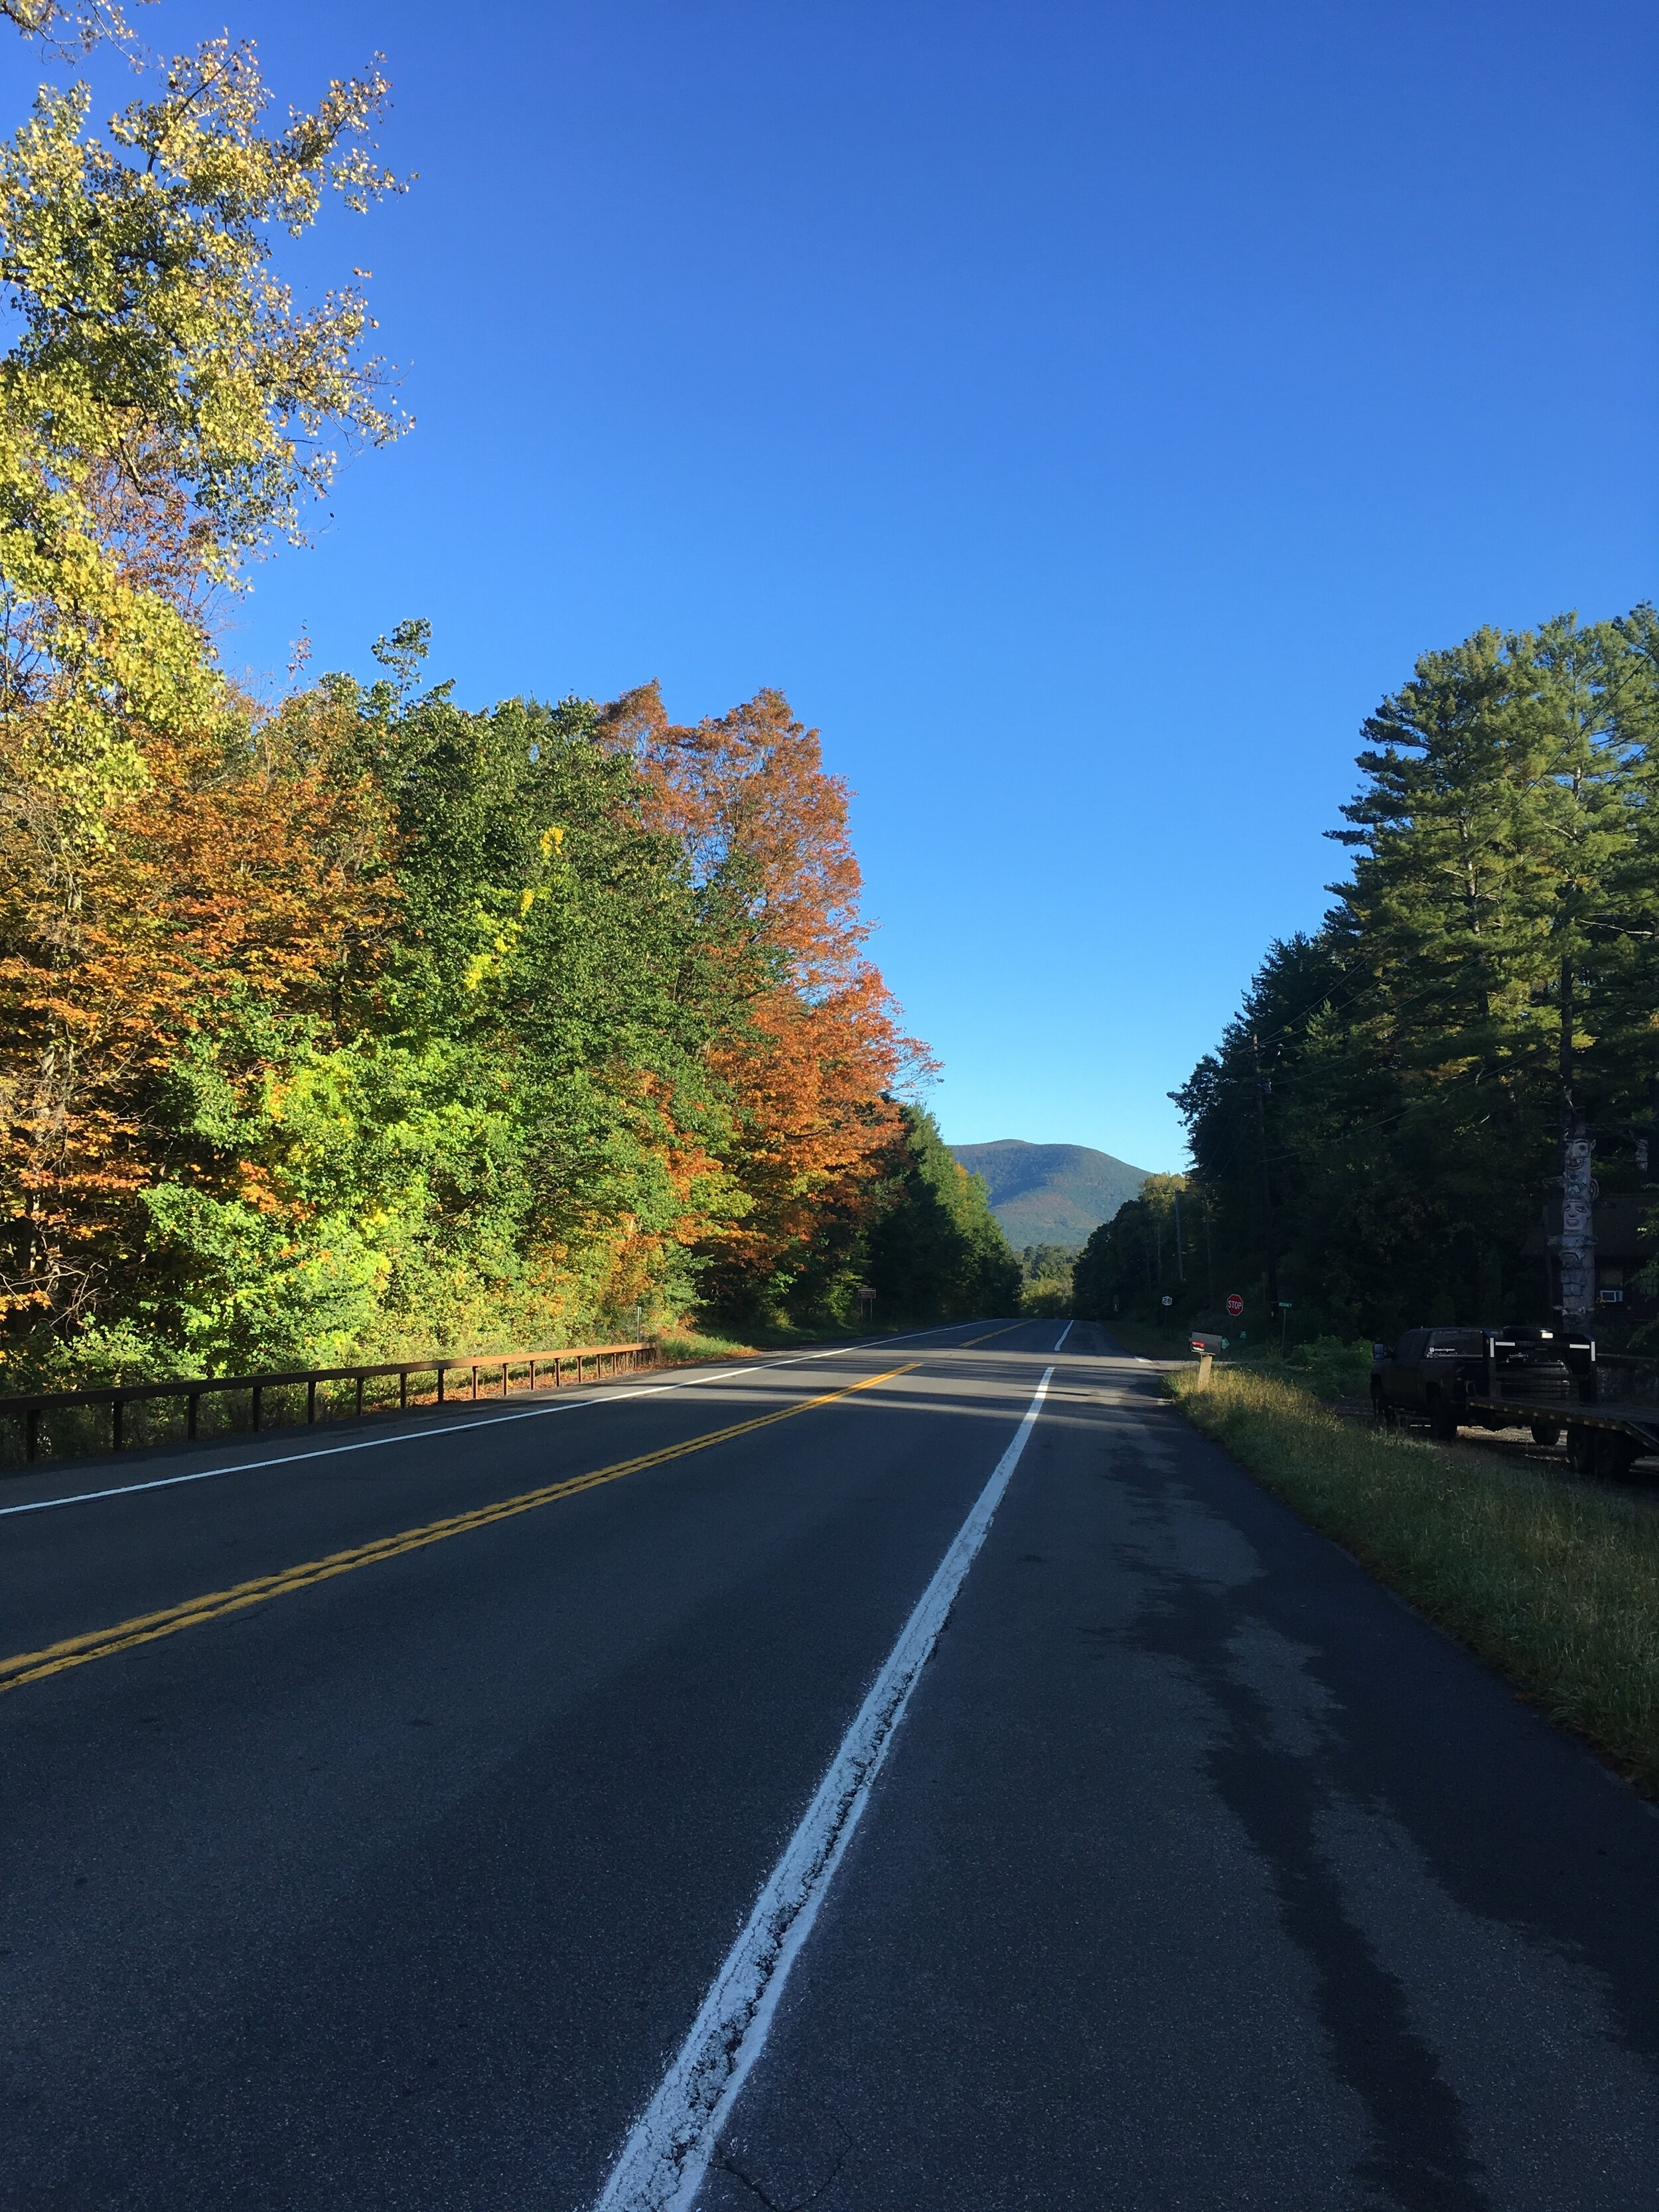 Driving the Route 28 Scenic Byway is a terrific way to see the Catskill Mountains in their fall splendor.